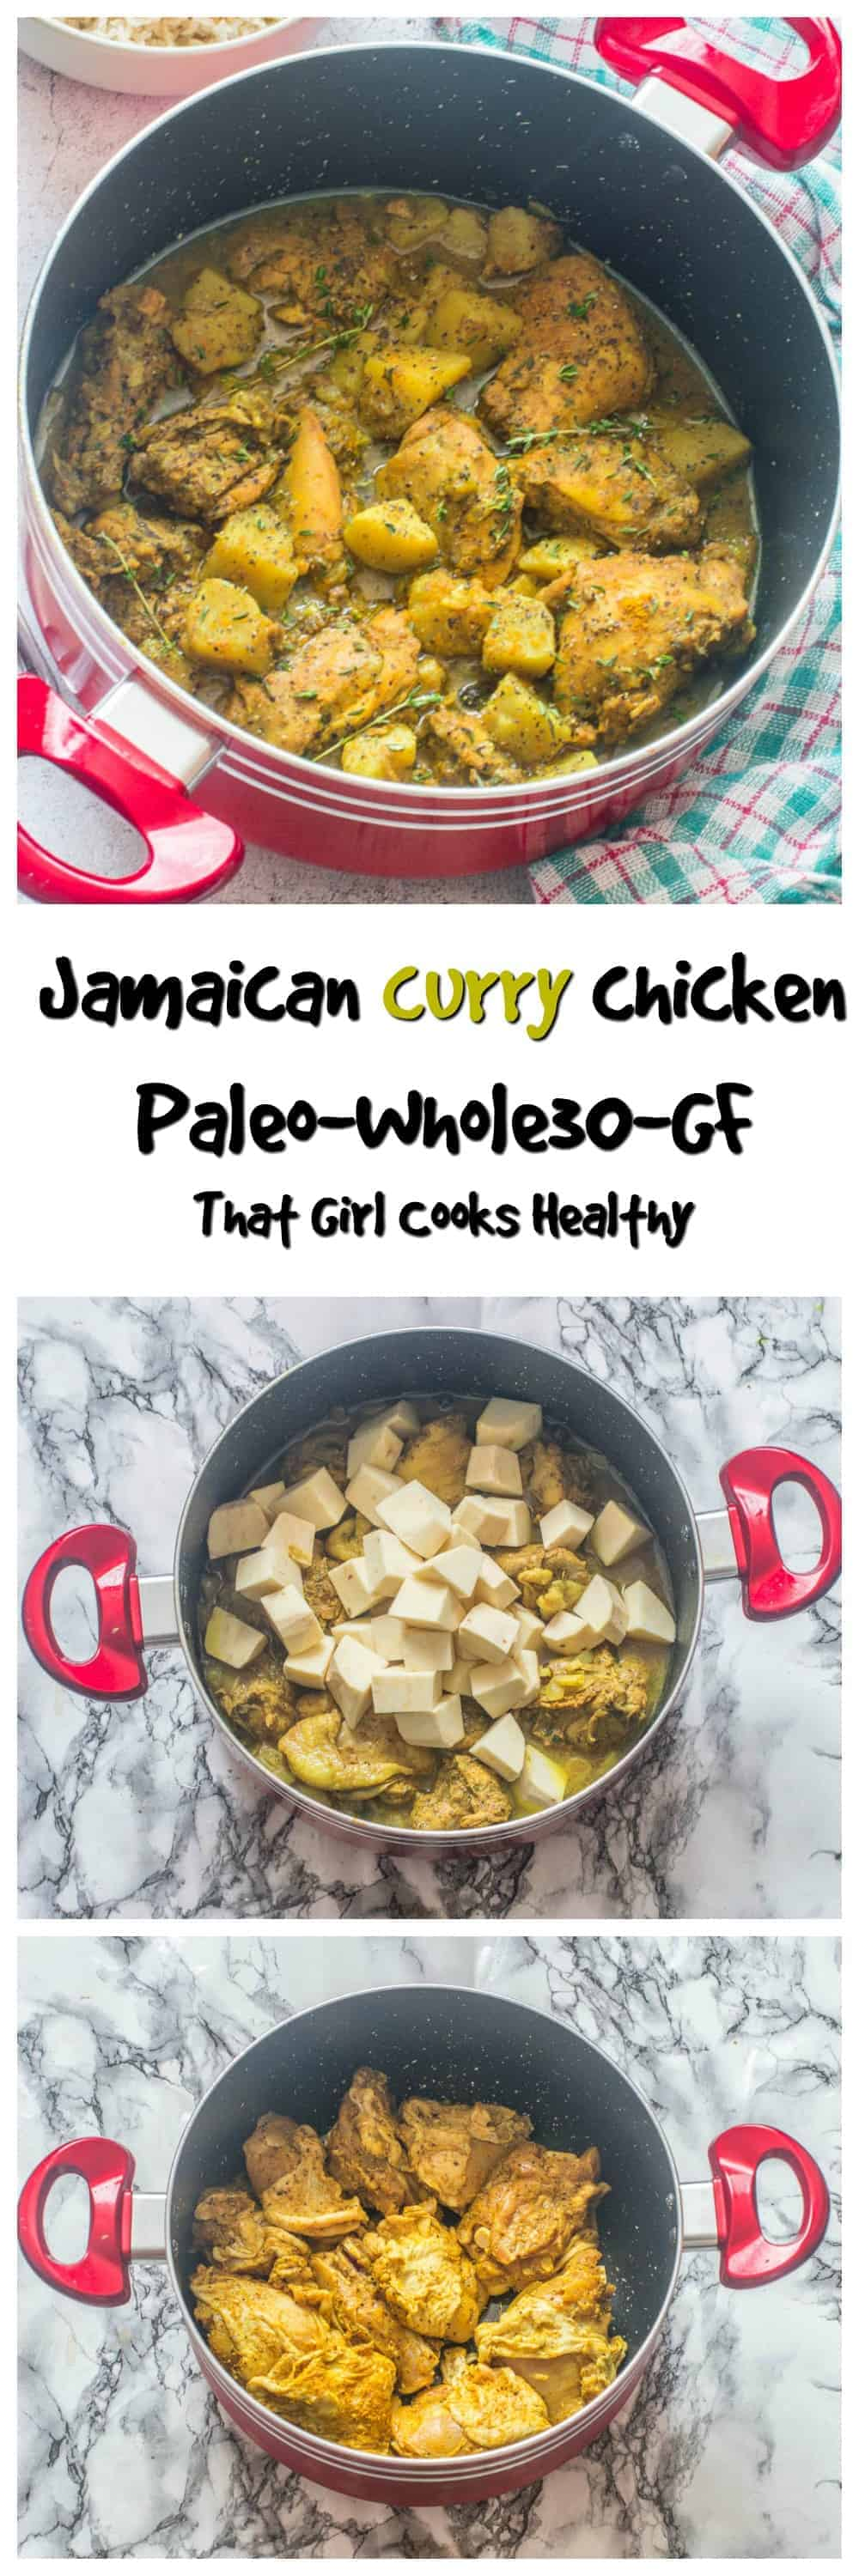 Jamaiacan curry chicken is delicious, perfect Caribbean cuisine that is filling and family friendly